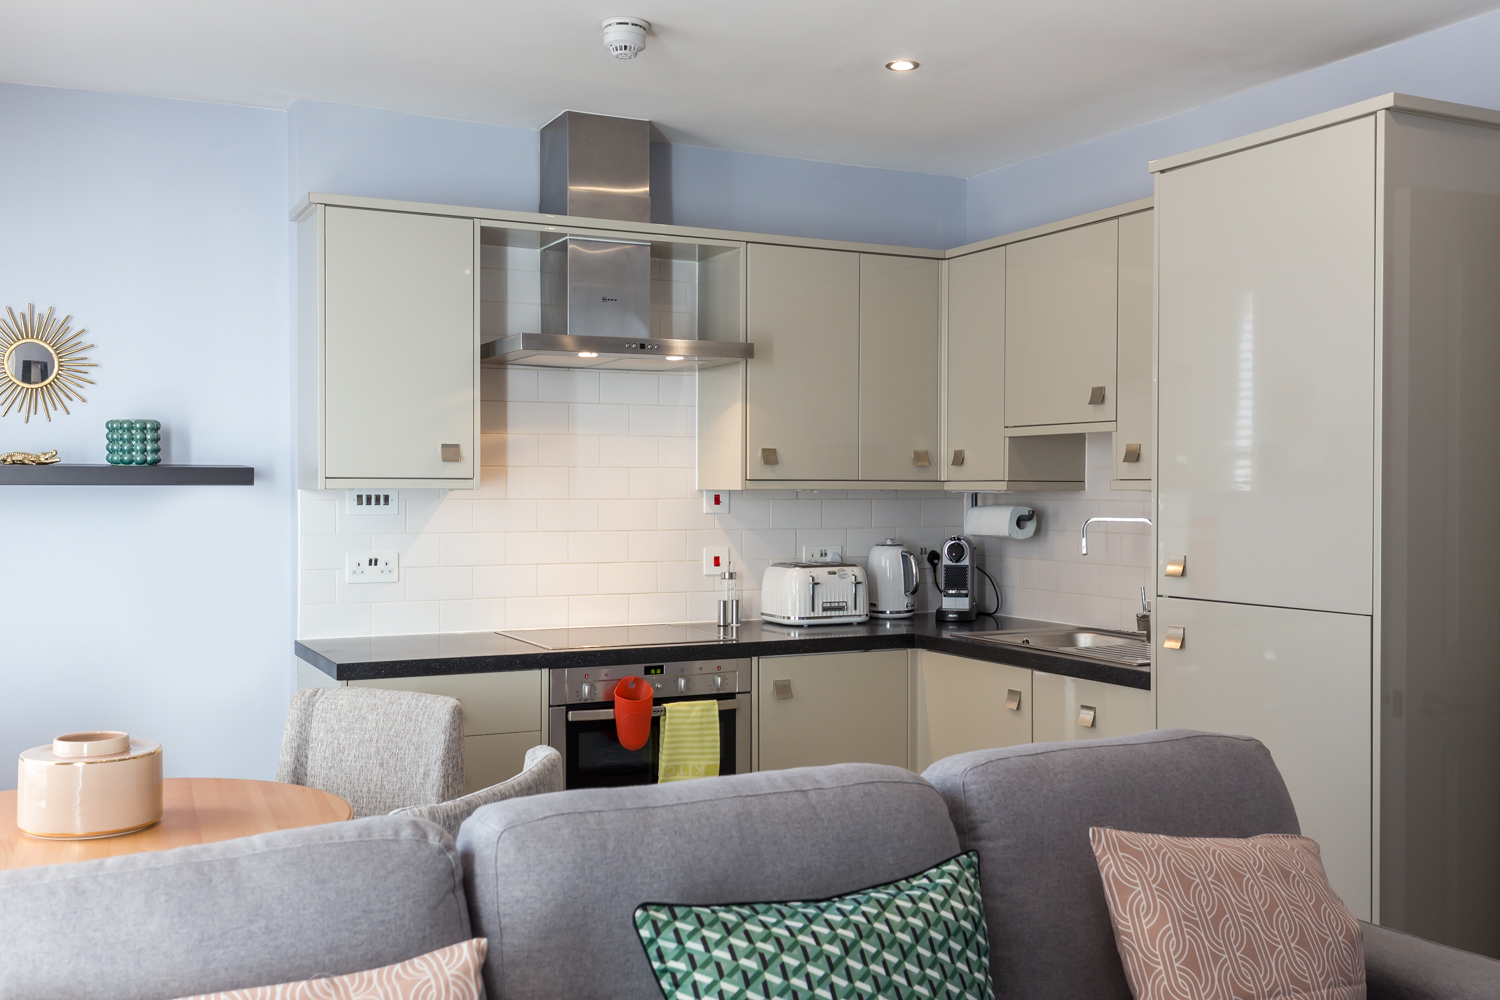 Kitchen at Covent Garden Serviced Apartments - Citybase Apartments